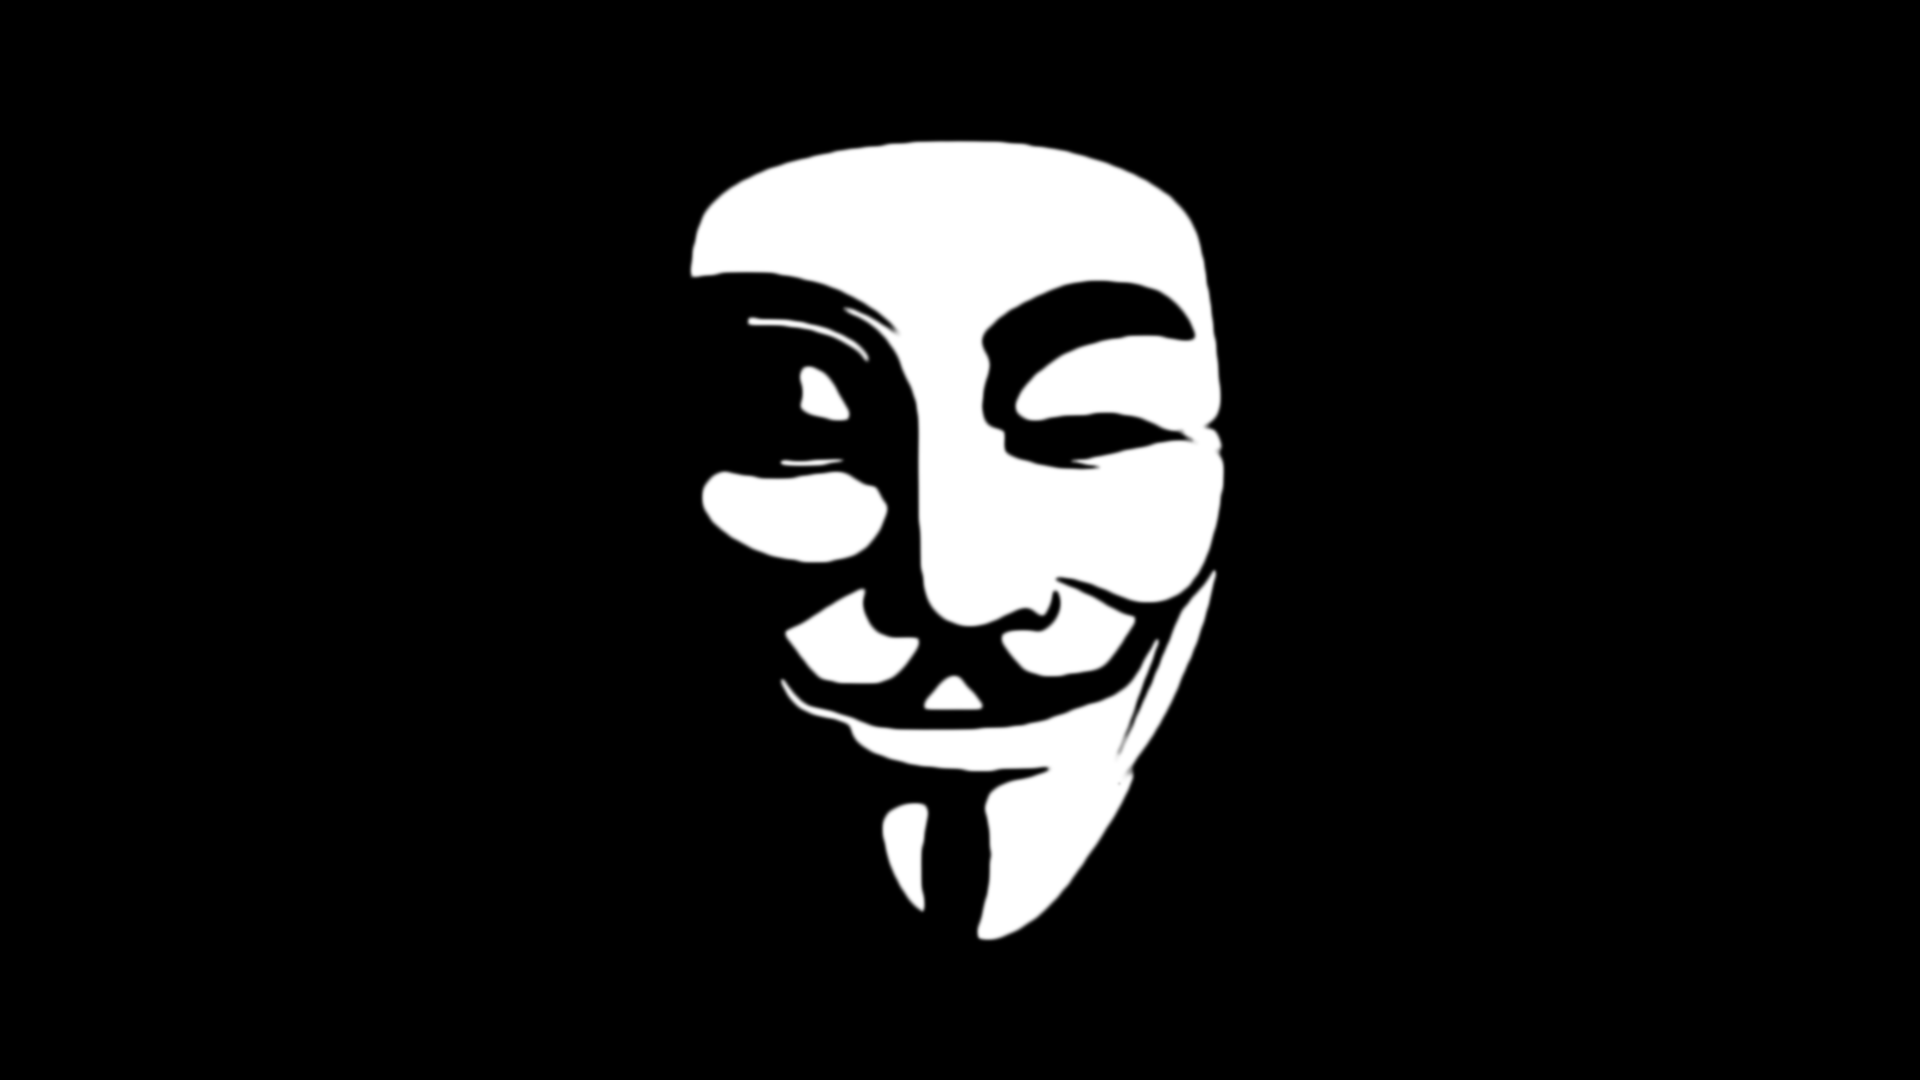 Anon mask wallpaper v1 0 by techdrawer on deviantart - Pictures of anonymous mask ...